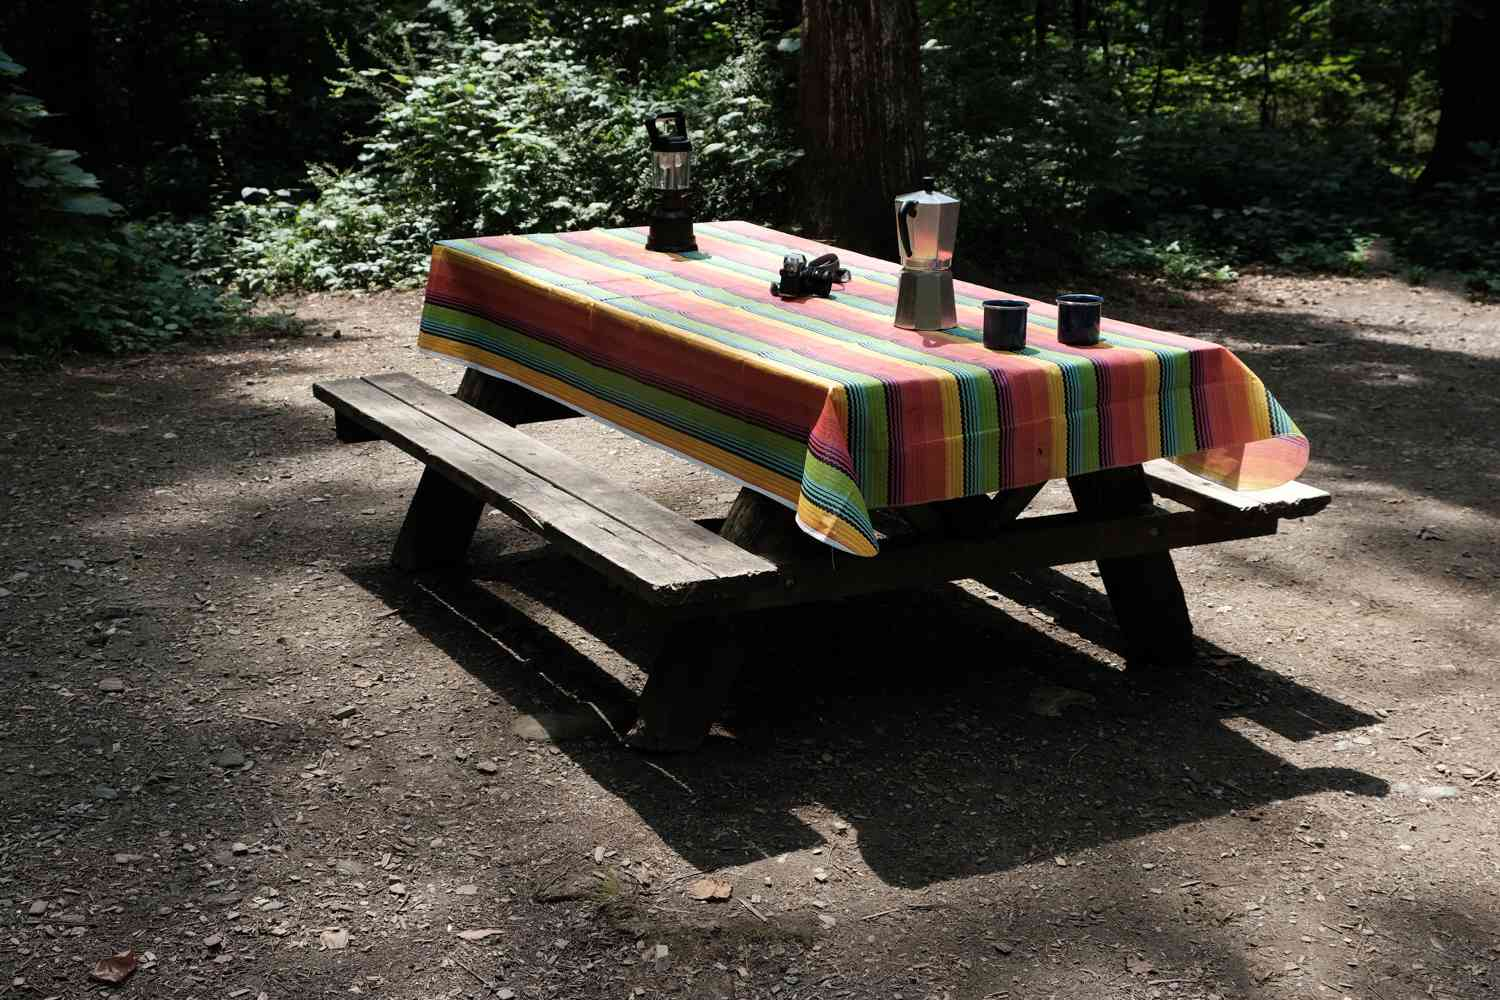 a picnic table in camping ground covered with colorful tablecloth and set for coffee